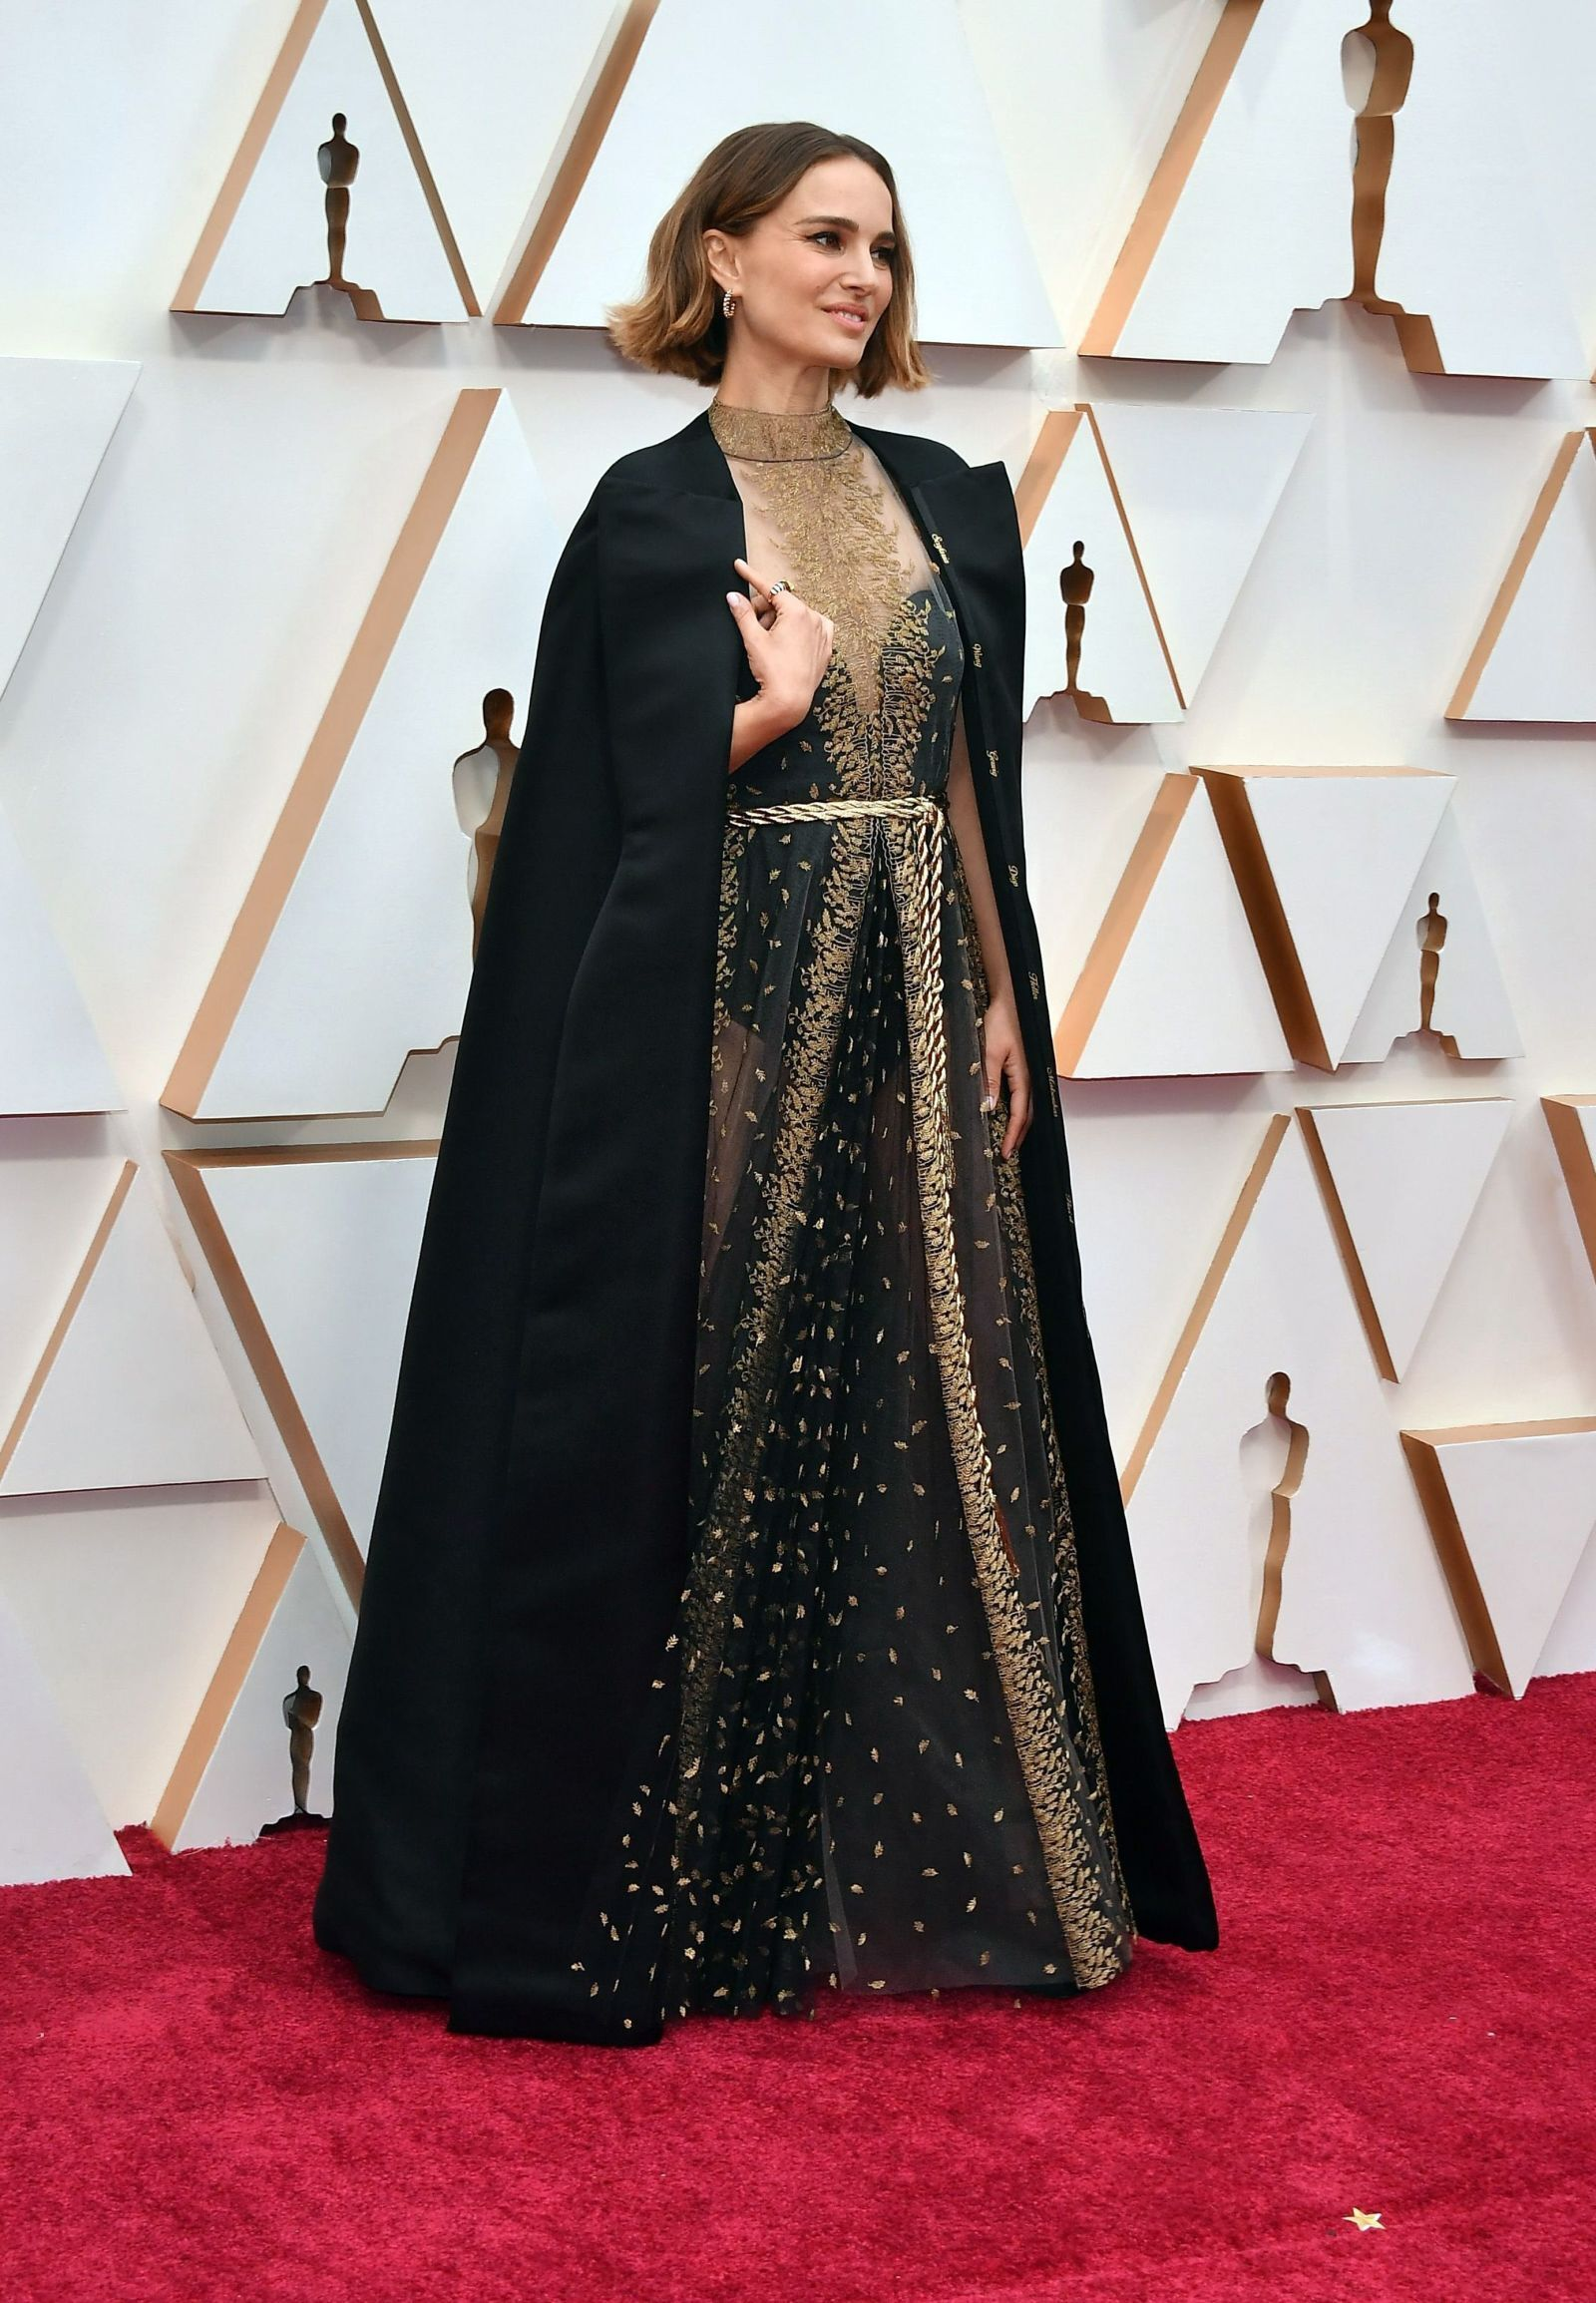 Oscars 2020: Natalie Portman takes a stand for women directors with her red carpet look